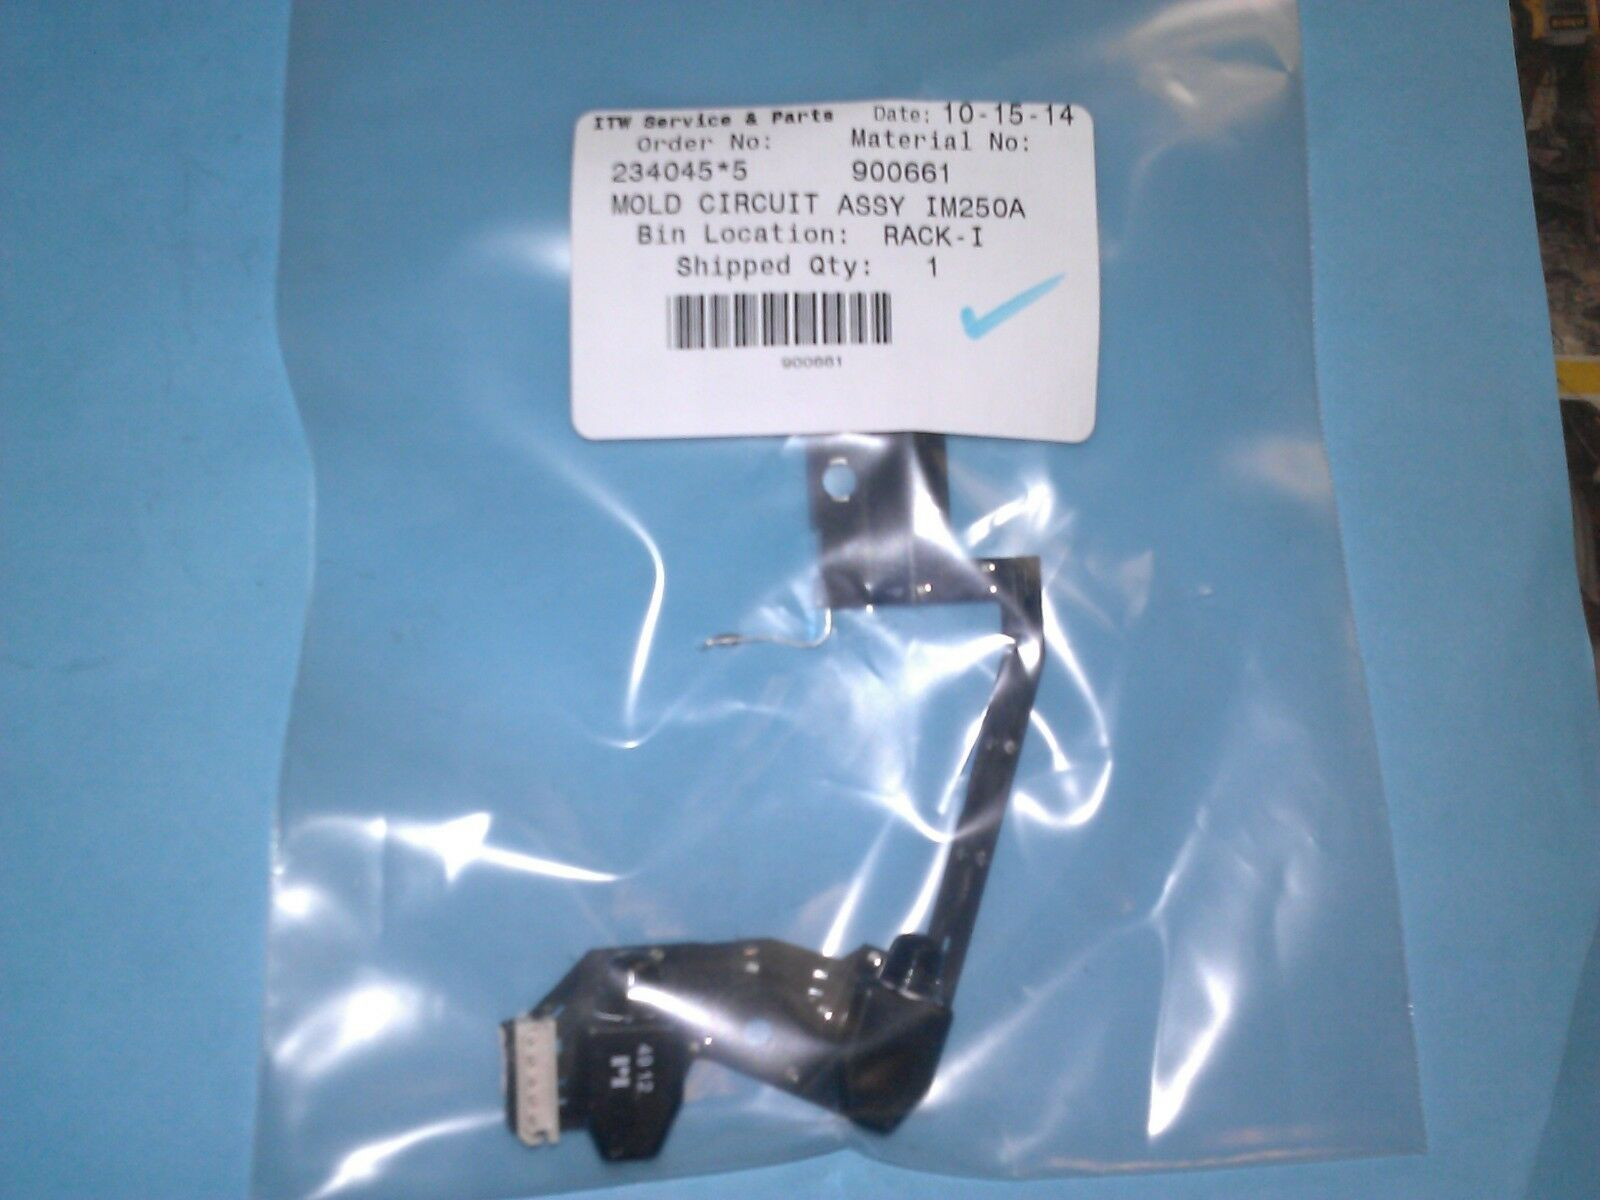 NEW 900661 MOLDED CIRCUIT BOARD FOR PASLODE IM250A